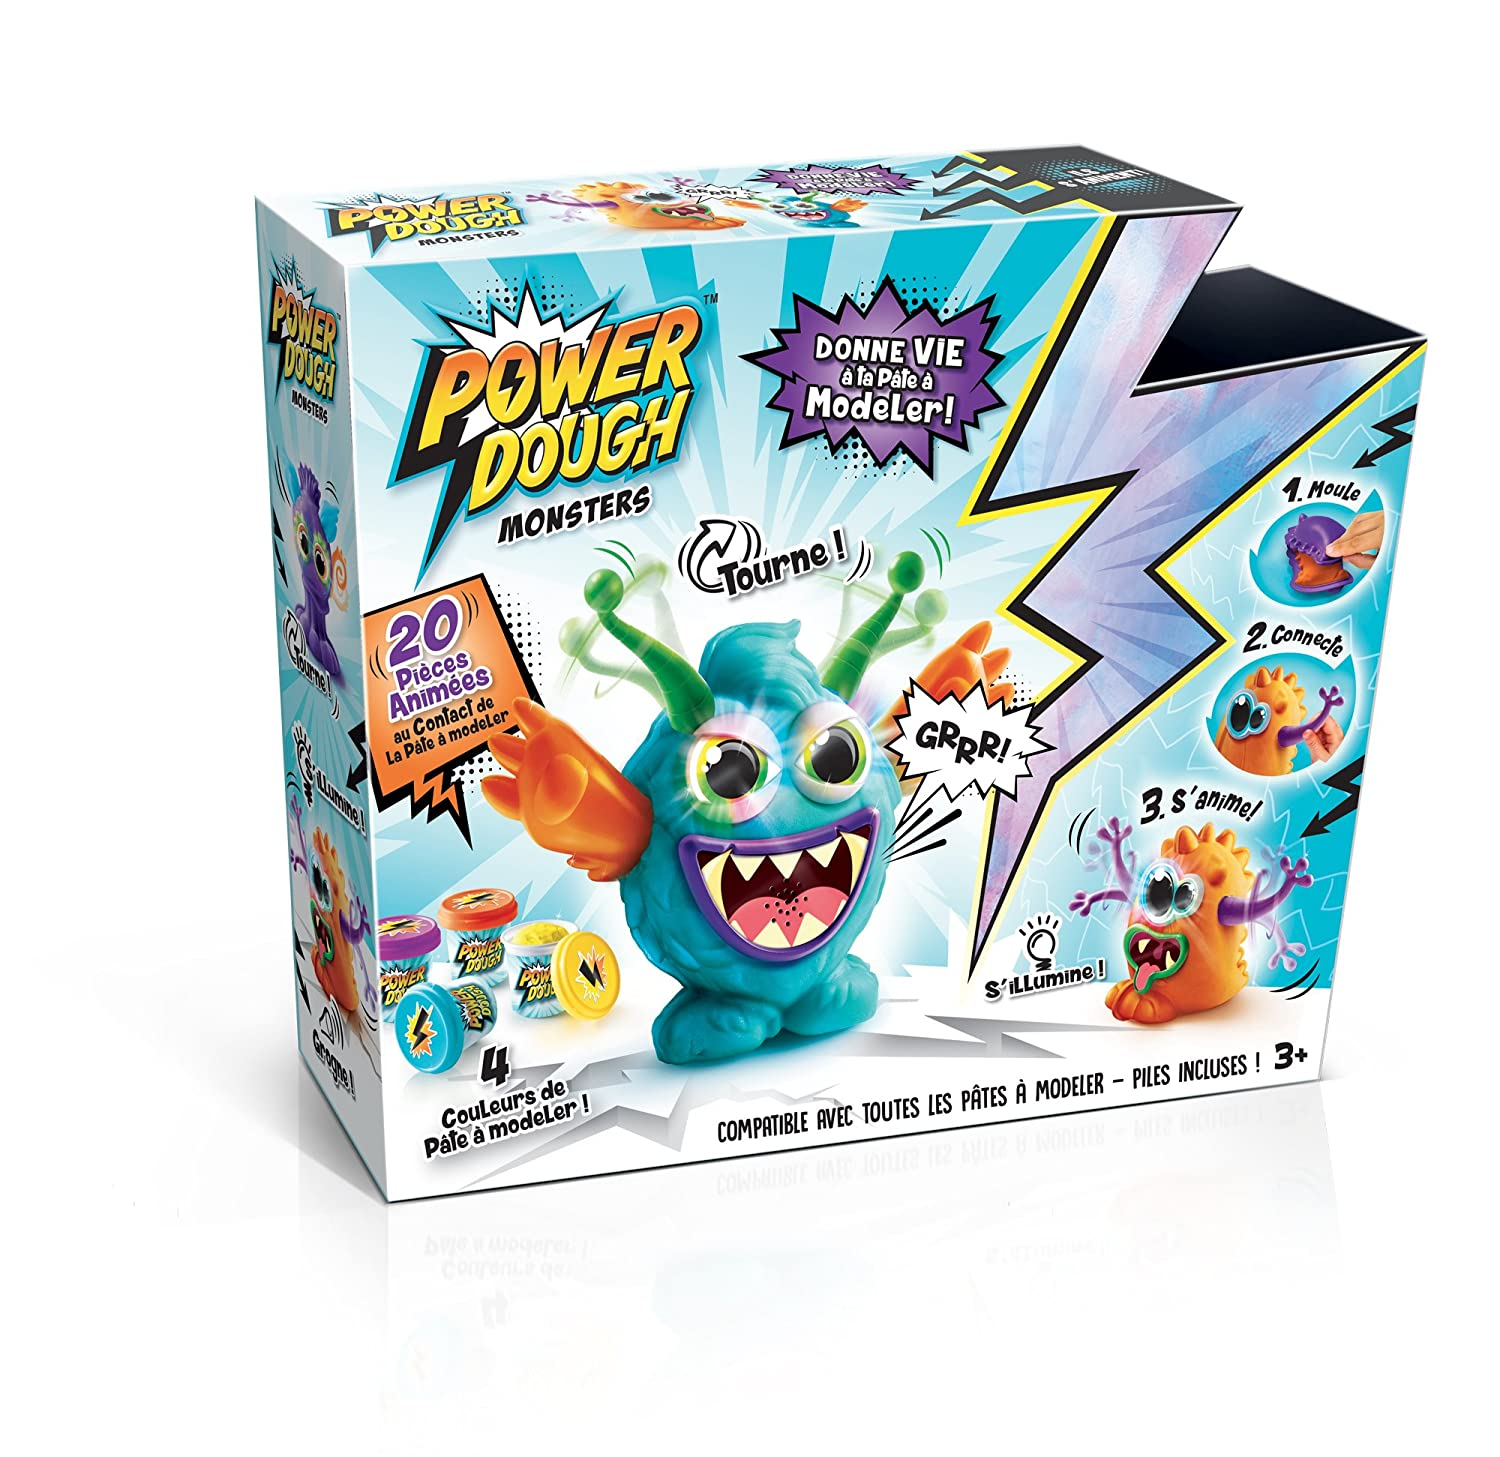 Canal Toys - ct57901 - Pate a Modeler - Power Dough - Crazy Monster: Amazon.es: Juguetes y juegos